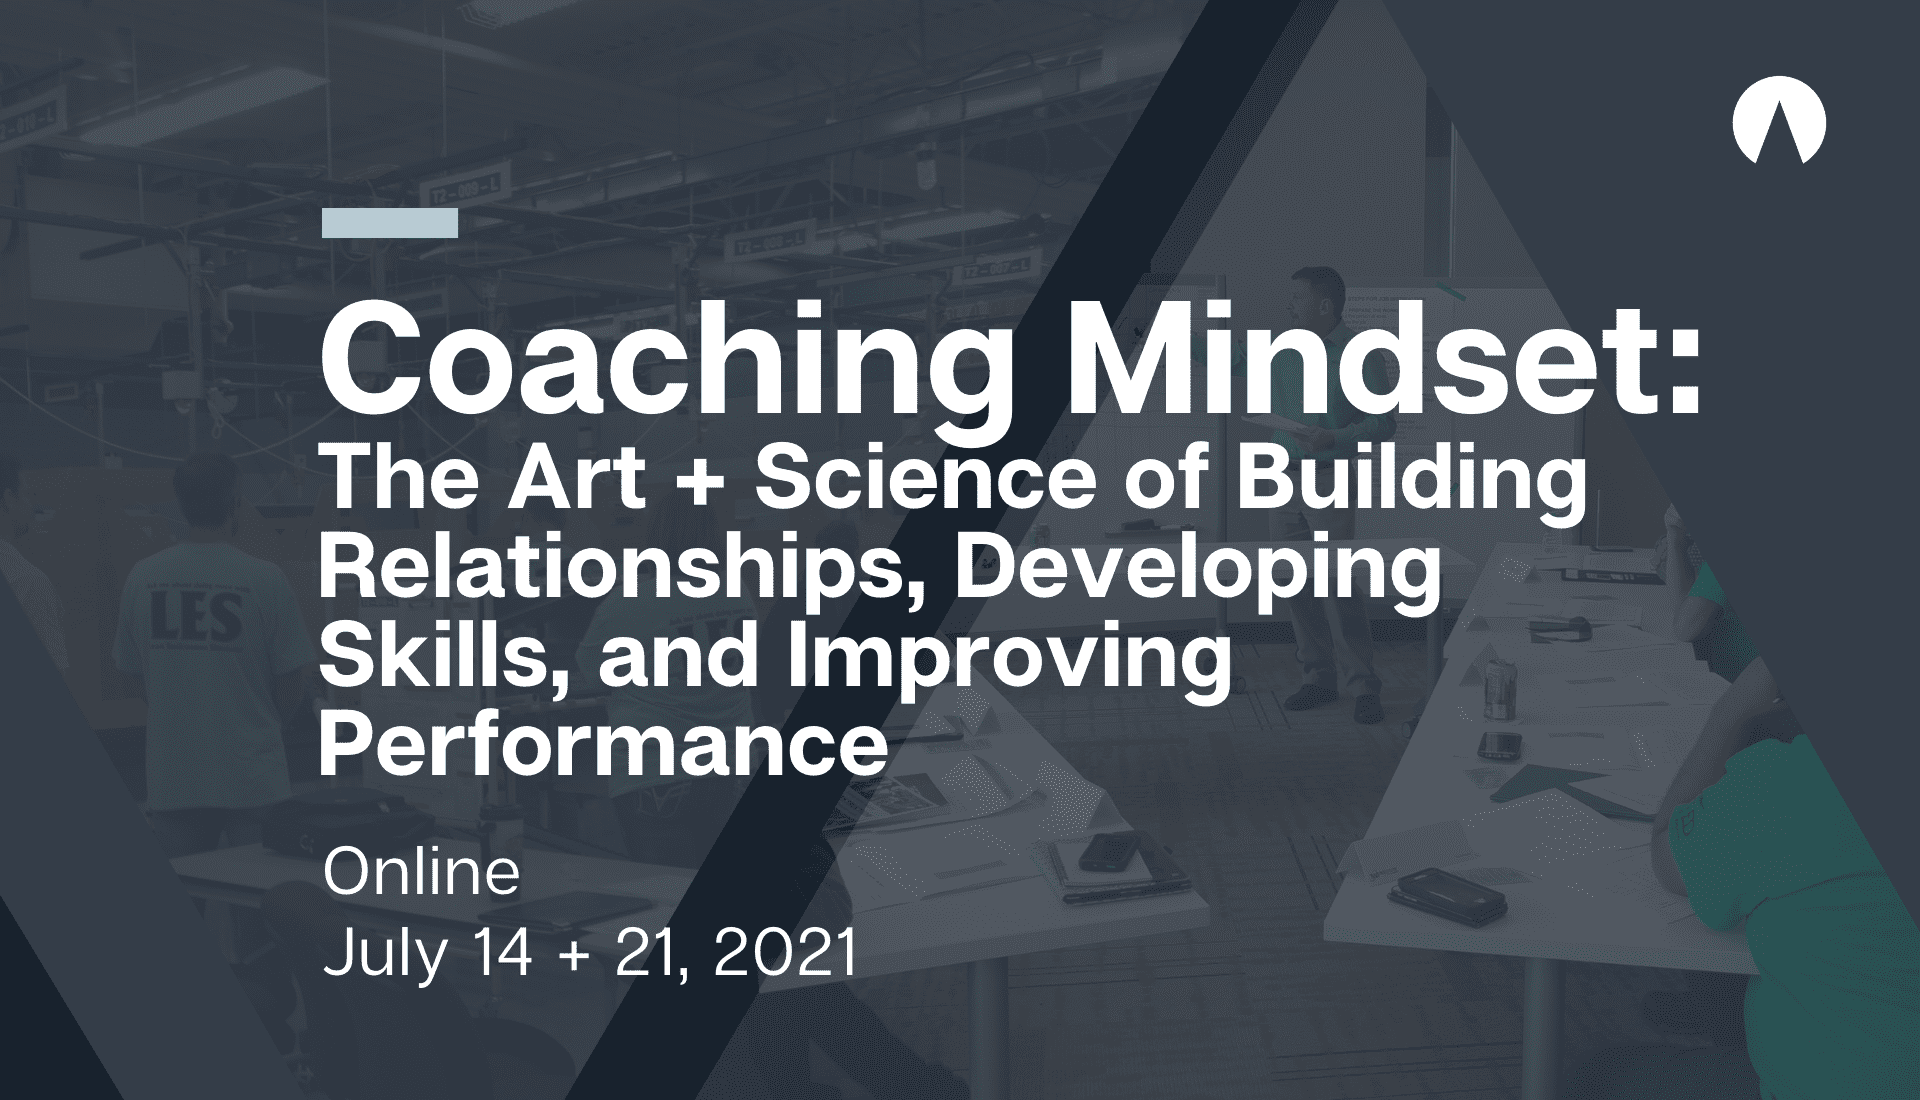 Coaching Mindset: The Art and Science of Building Relationships, Developing Skills, and Improving Performance